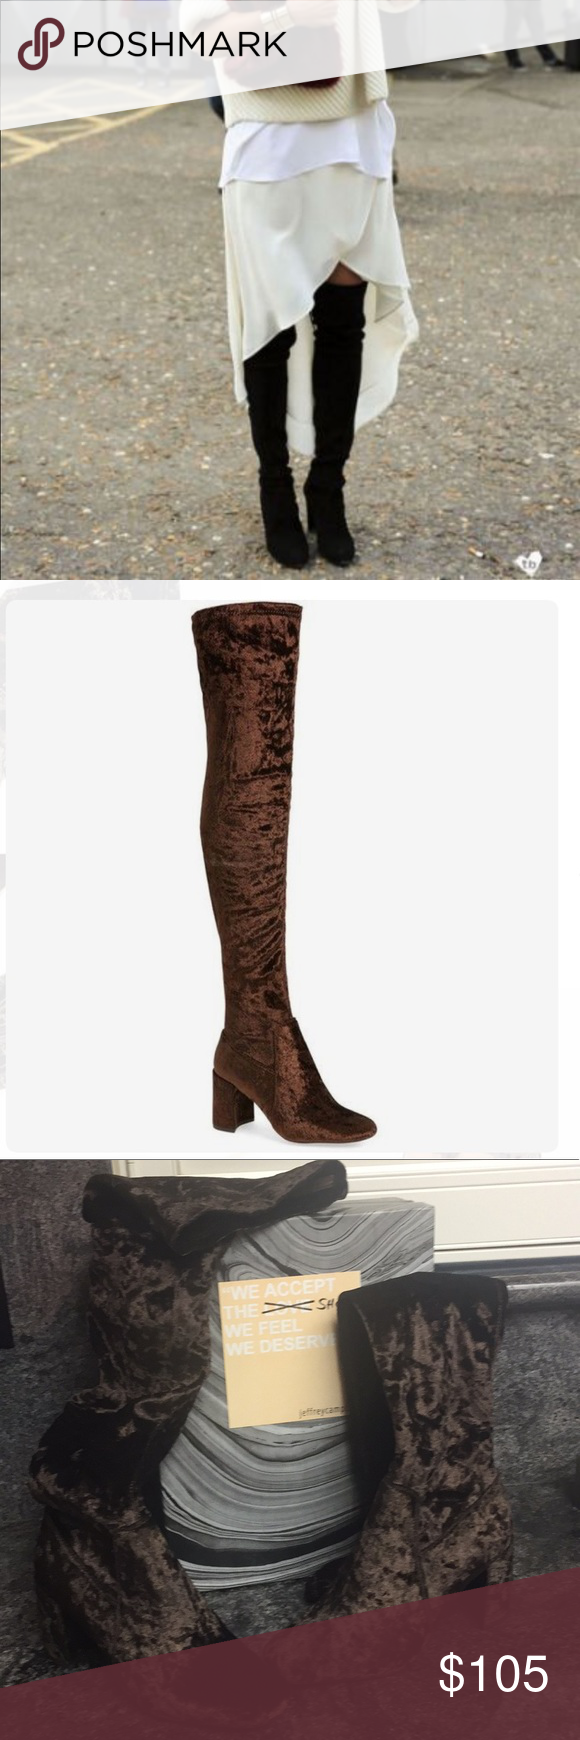 188853a1aa8 Jeffrey Campbell Crushed Velvet Over Knee Boots Jeffrey Campbell Cienega  Crushed Velvet Over The Knee Boots New with box Color  Brown Size  8 A  square toe ...